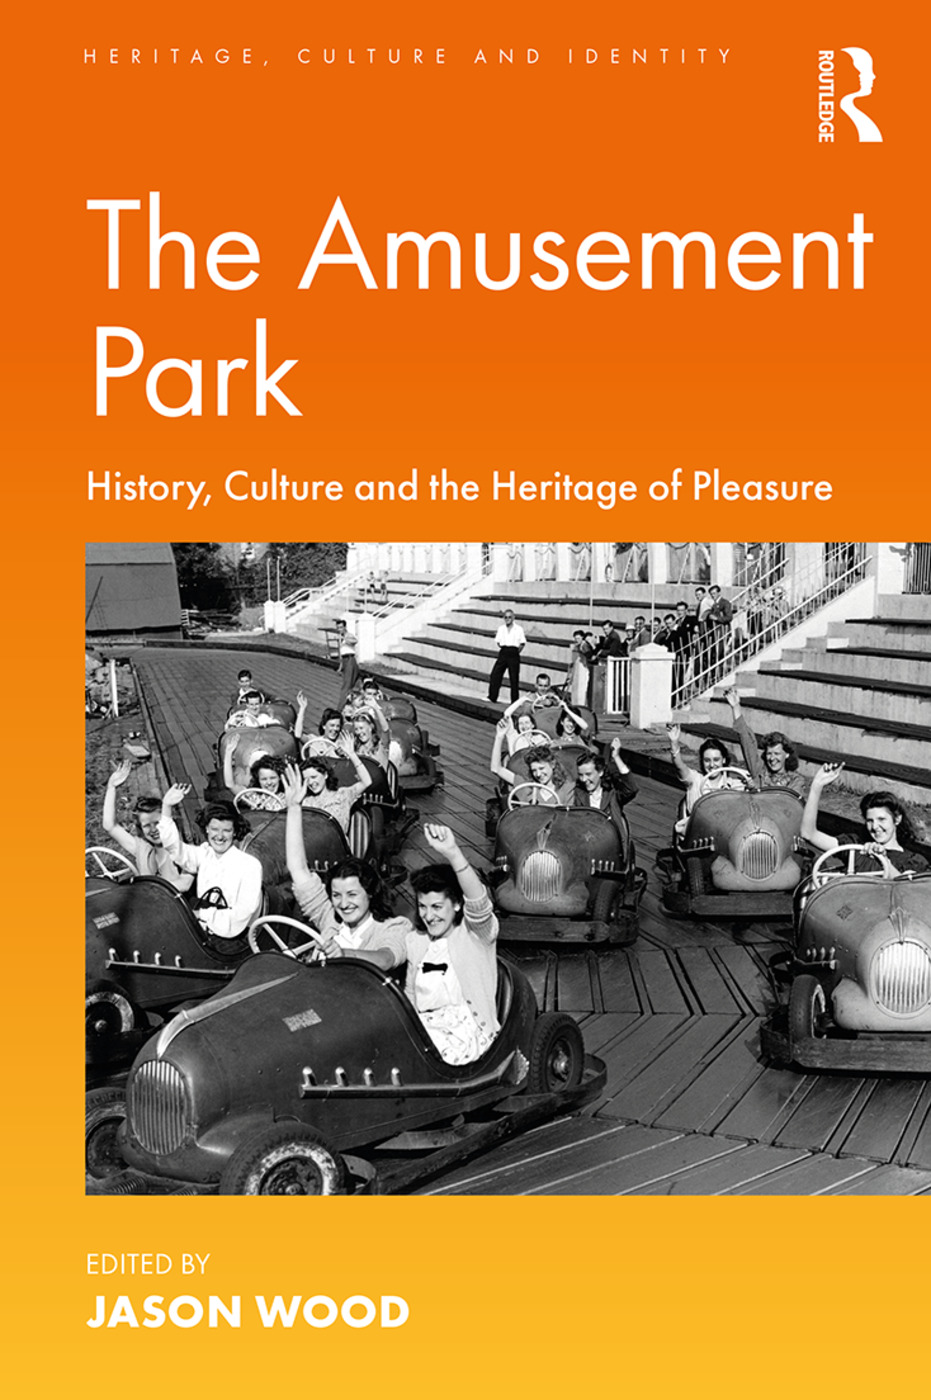 The Amusement Park: History, Culture and the Heritage of Pleasure book cover